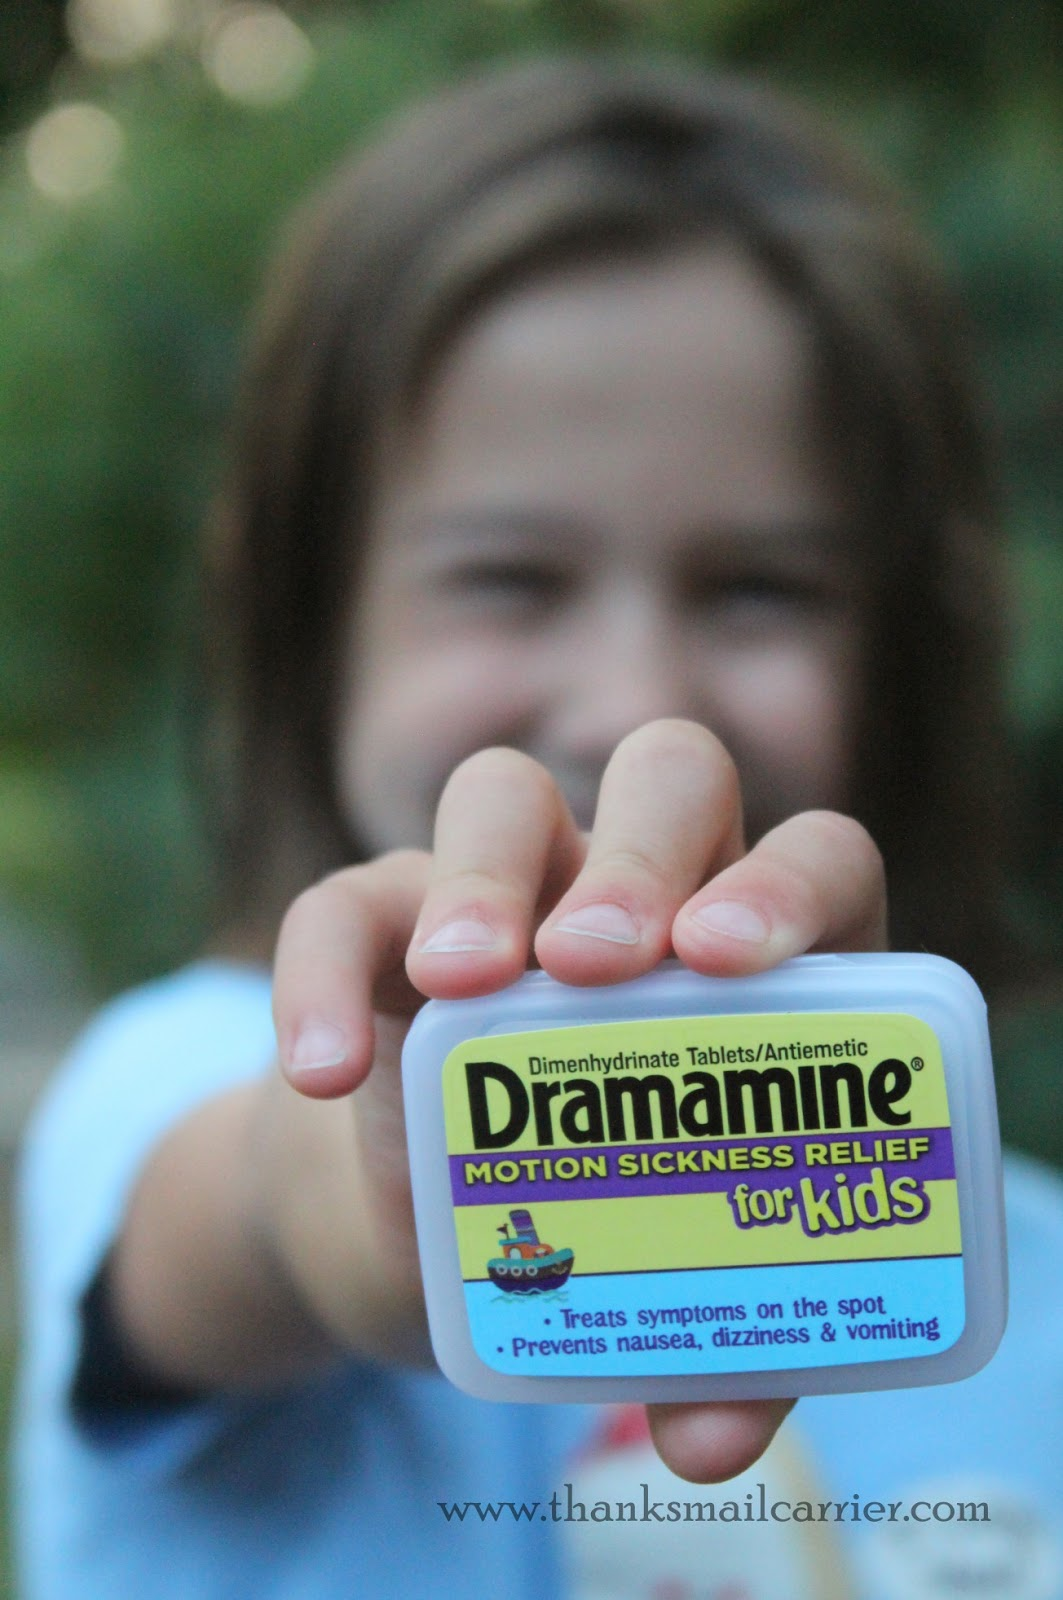 Dramamine for Kids motion sickness